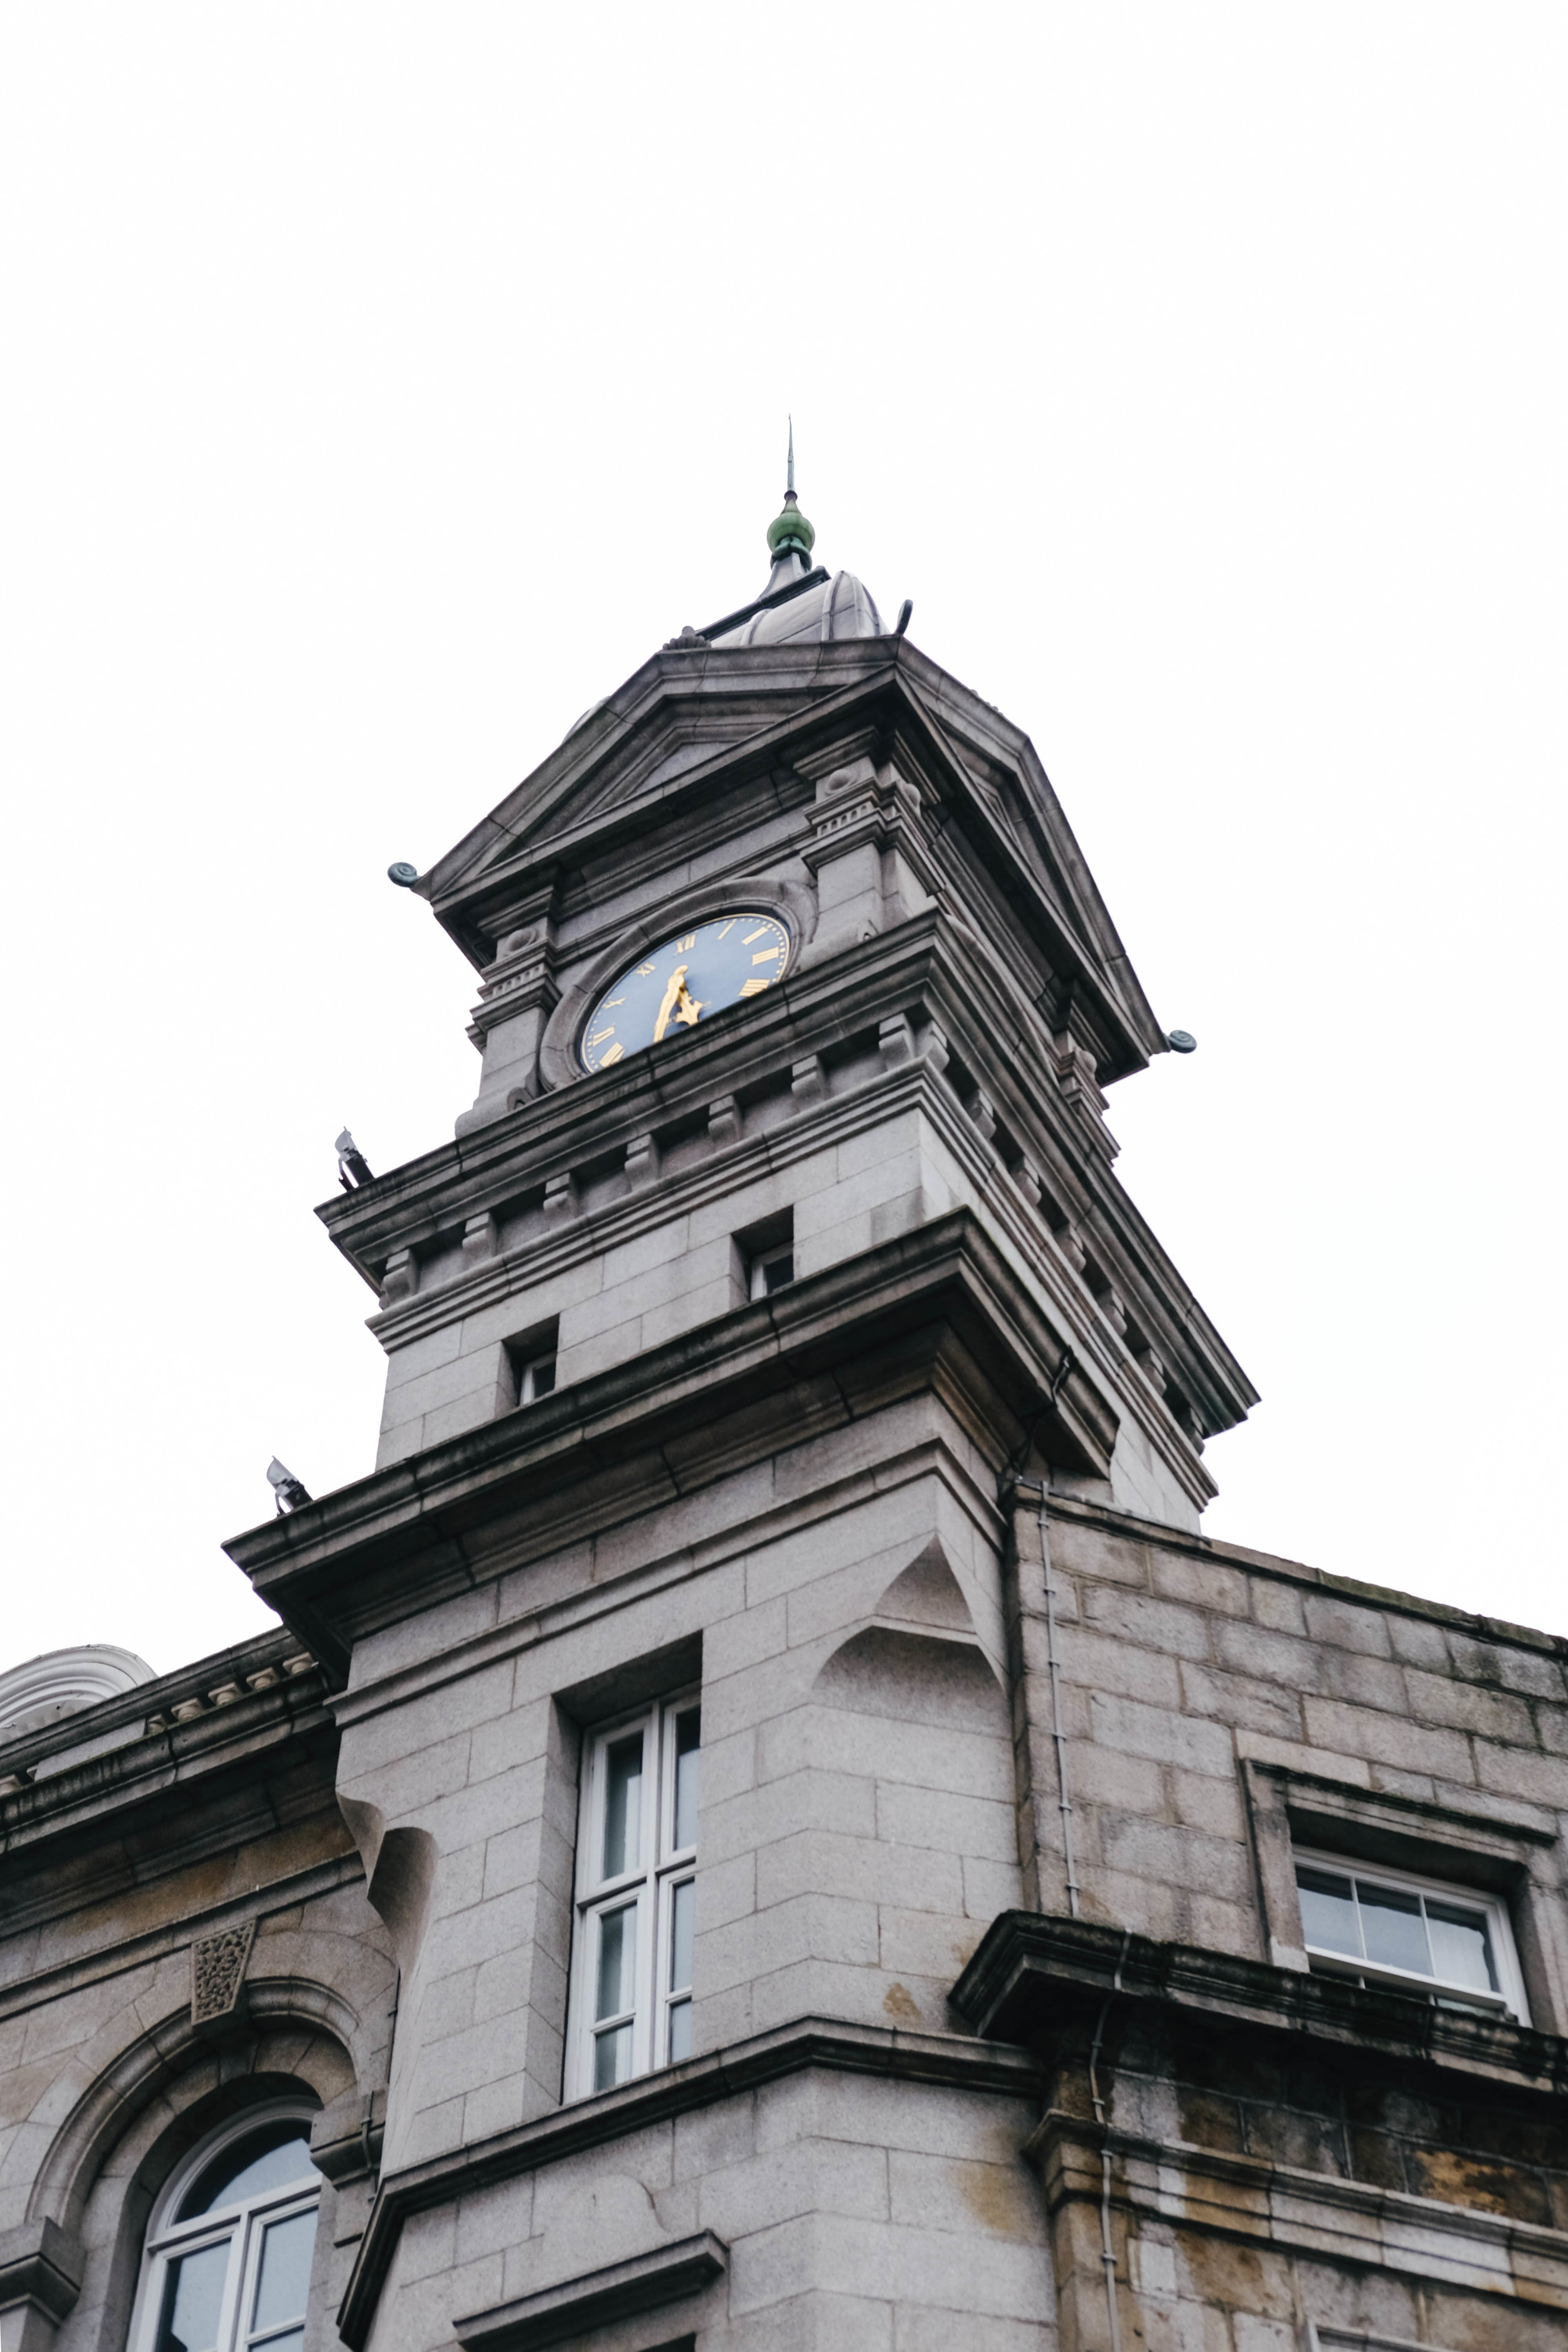 "<p style=""font-family:brandon-grotesque;font-weight:500; font-size:11px; text-center:left; color:light grey;letter-spacing: 1px"">AUGUST 7, 2017 • CLOCK TOWER • � Dublin, Ireland</p>"